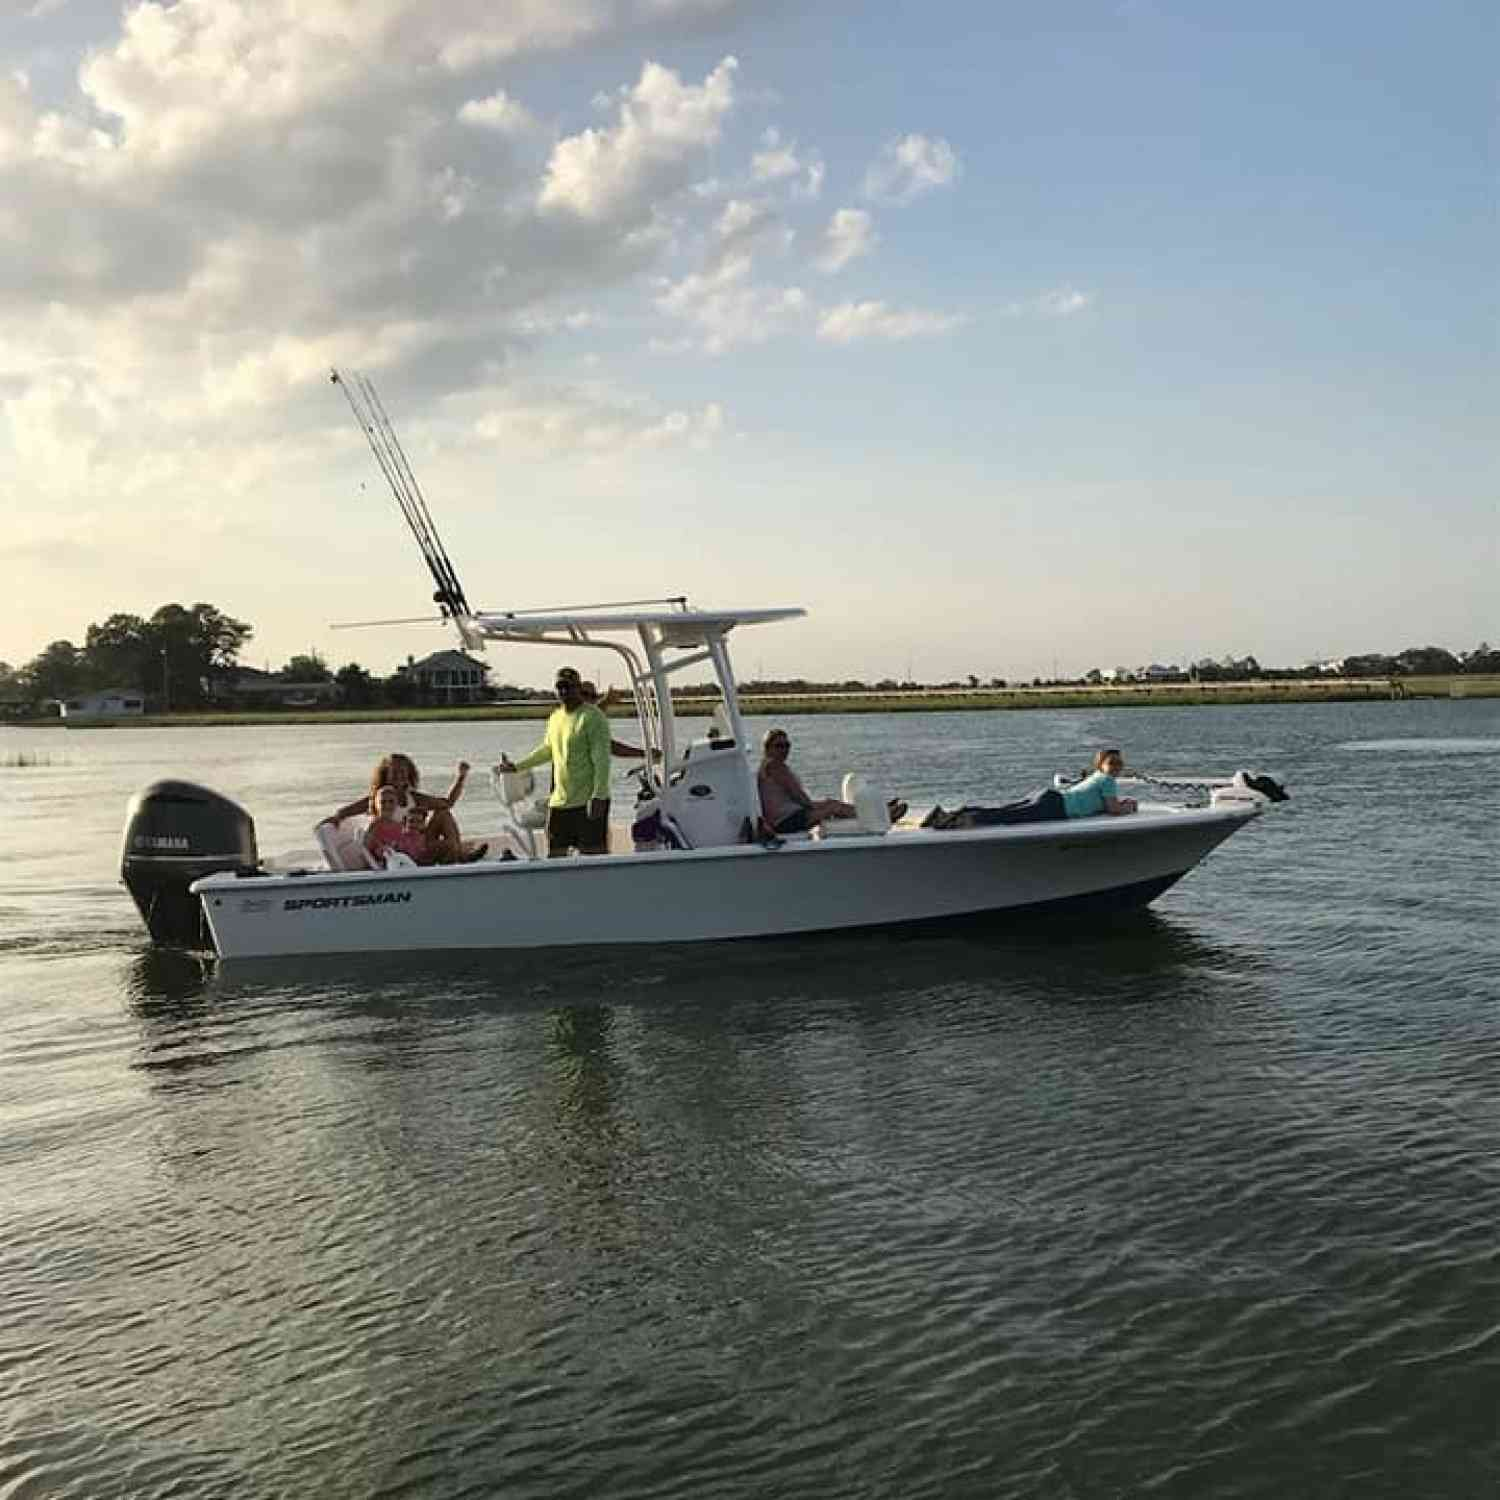 Title: It's Tybee Time - On board their Sportsman Masters 247 Bay Boat - Location: Tybee Island, GA. Participating in the Photo Contest #SportsmanAugust2018